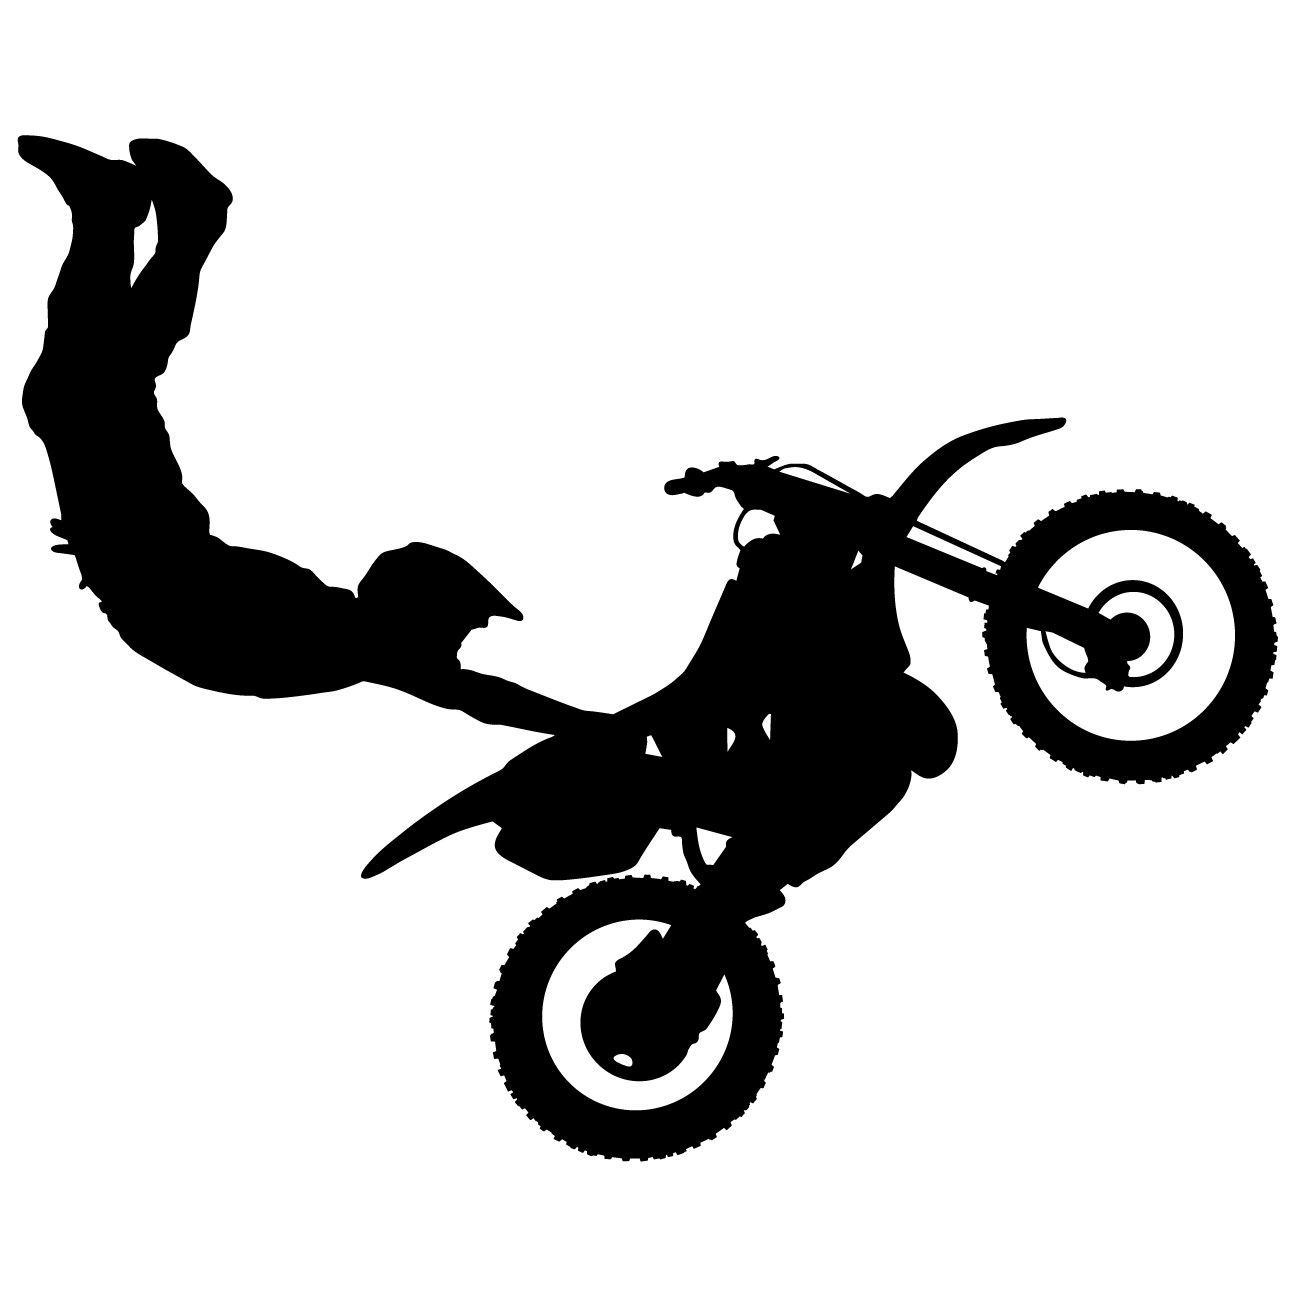 dirt bike silhouette 6 motocross silhouette png transparent onlygfxcom dirt bike silhouette